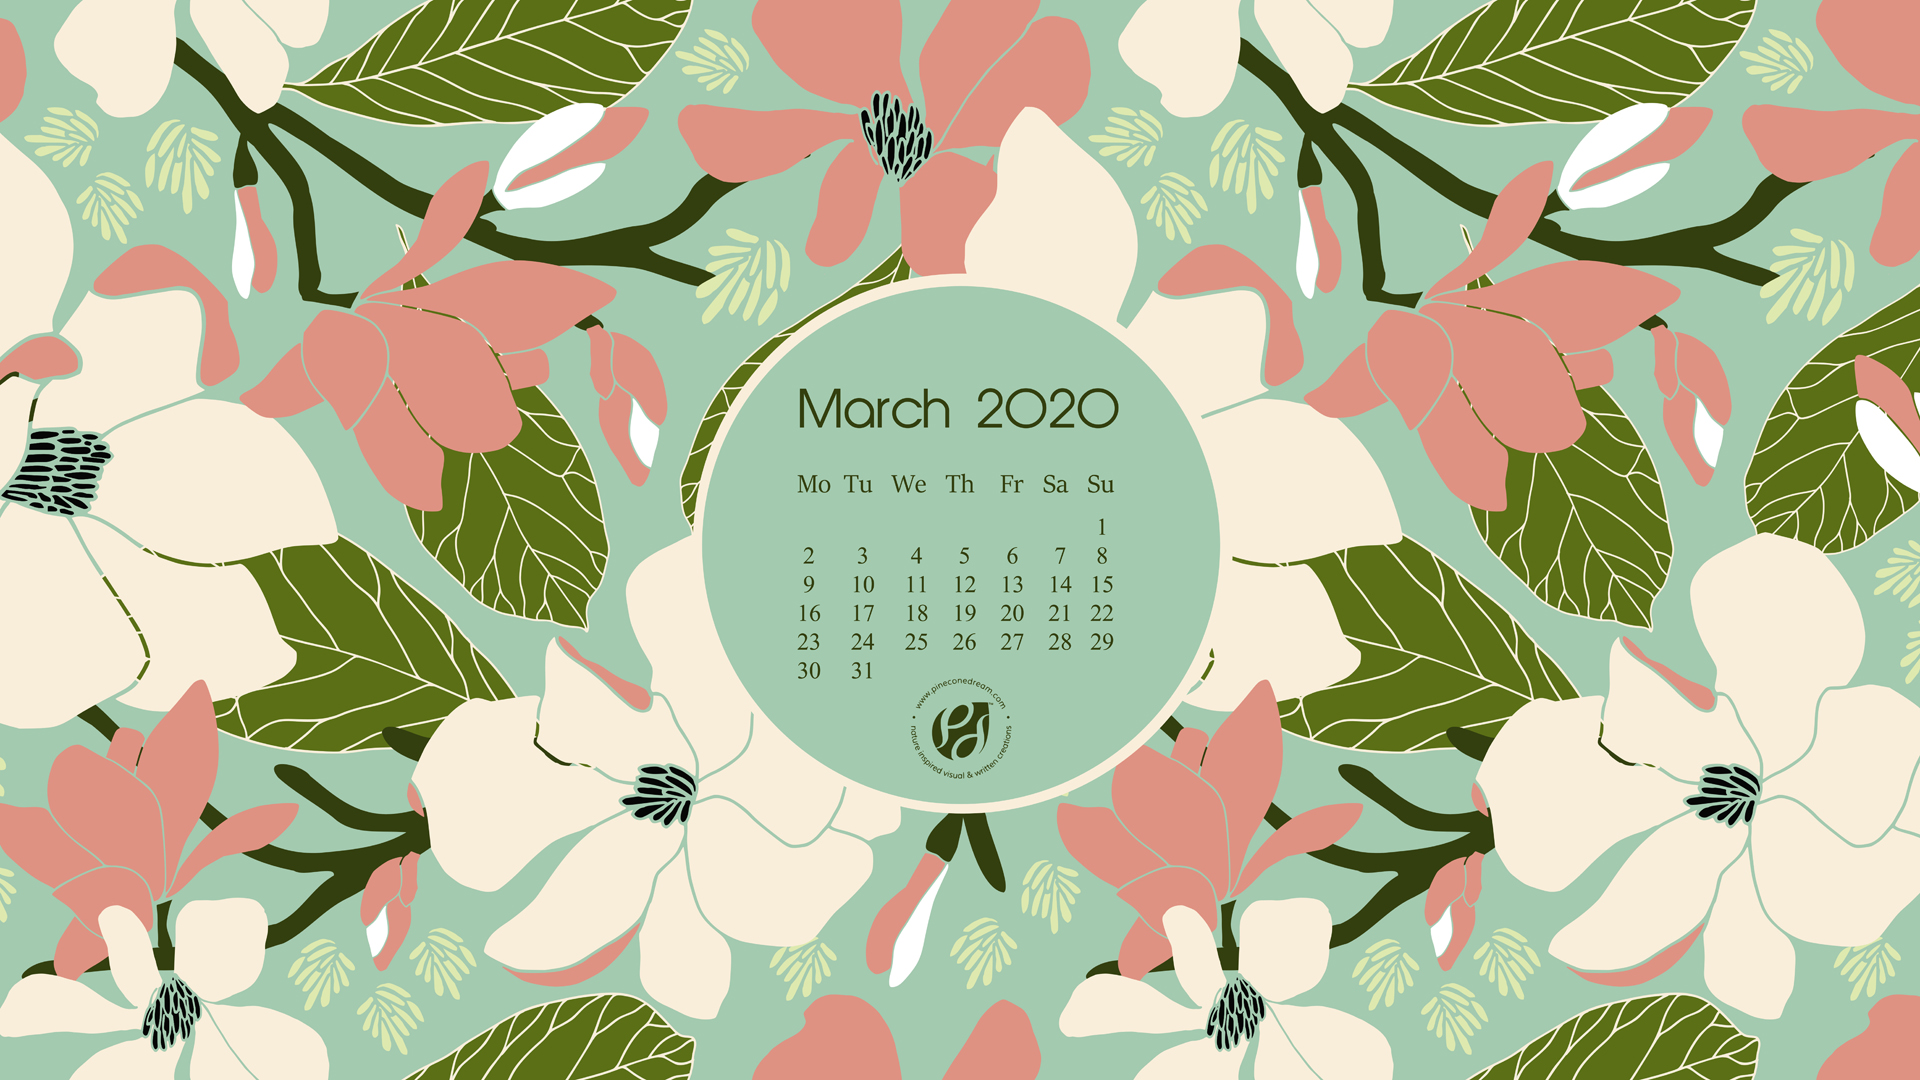 March 2020 free calendar wallpapers & printable planner ...